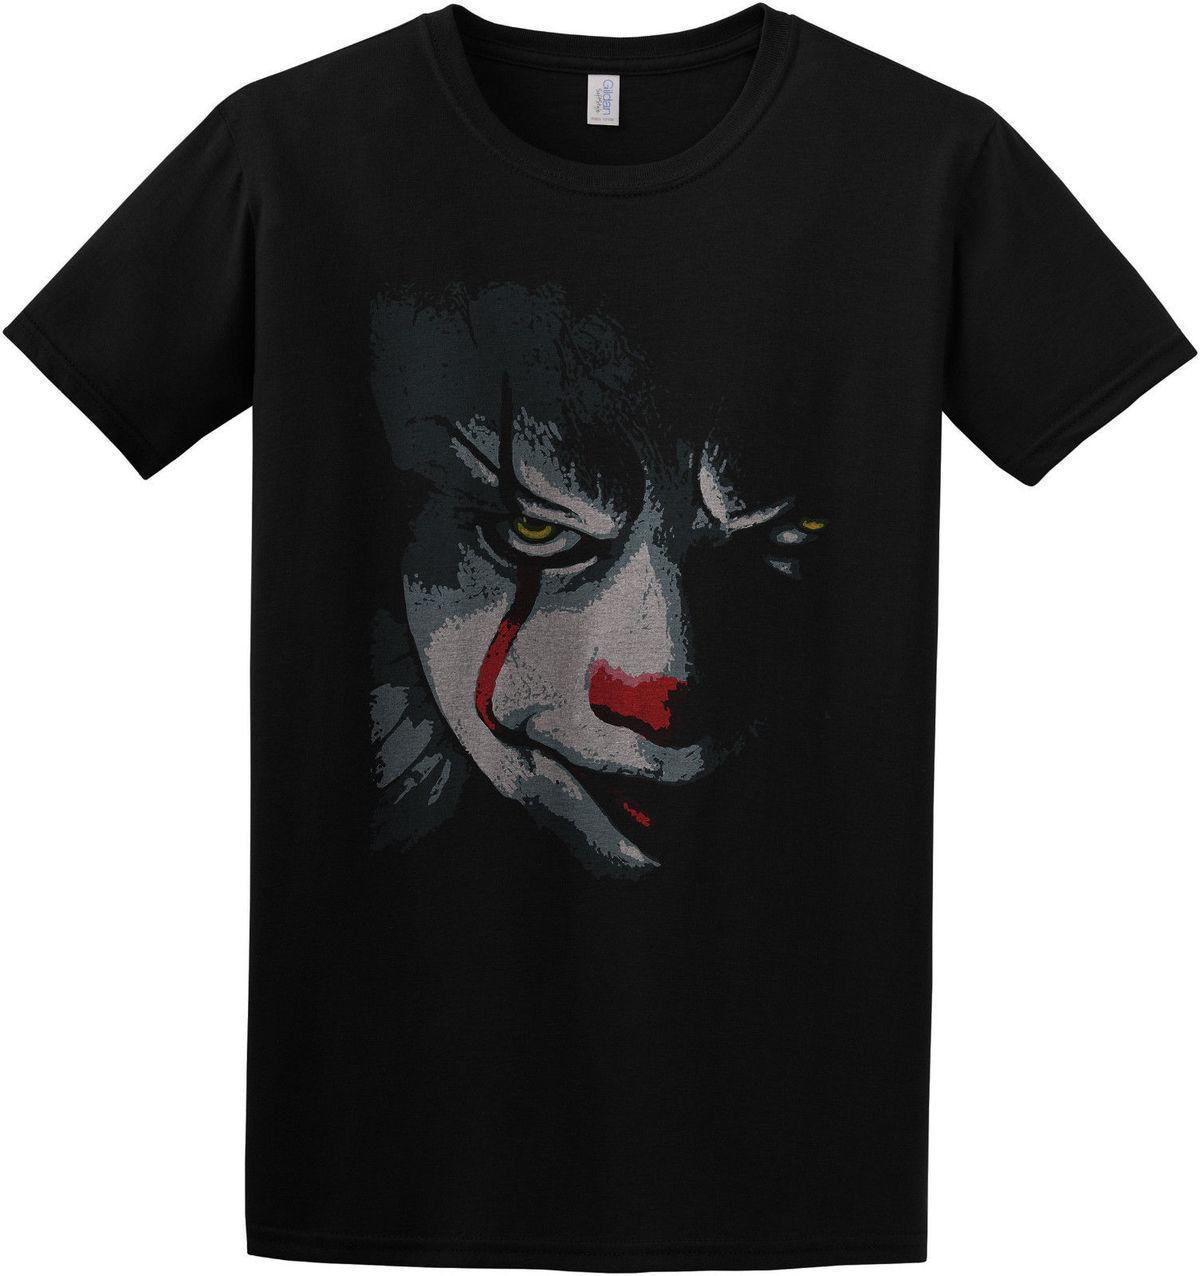 Pennywise It 2017 Movie Inspired Creepy Scary Clown T Shirt Top S